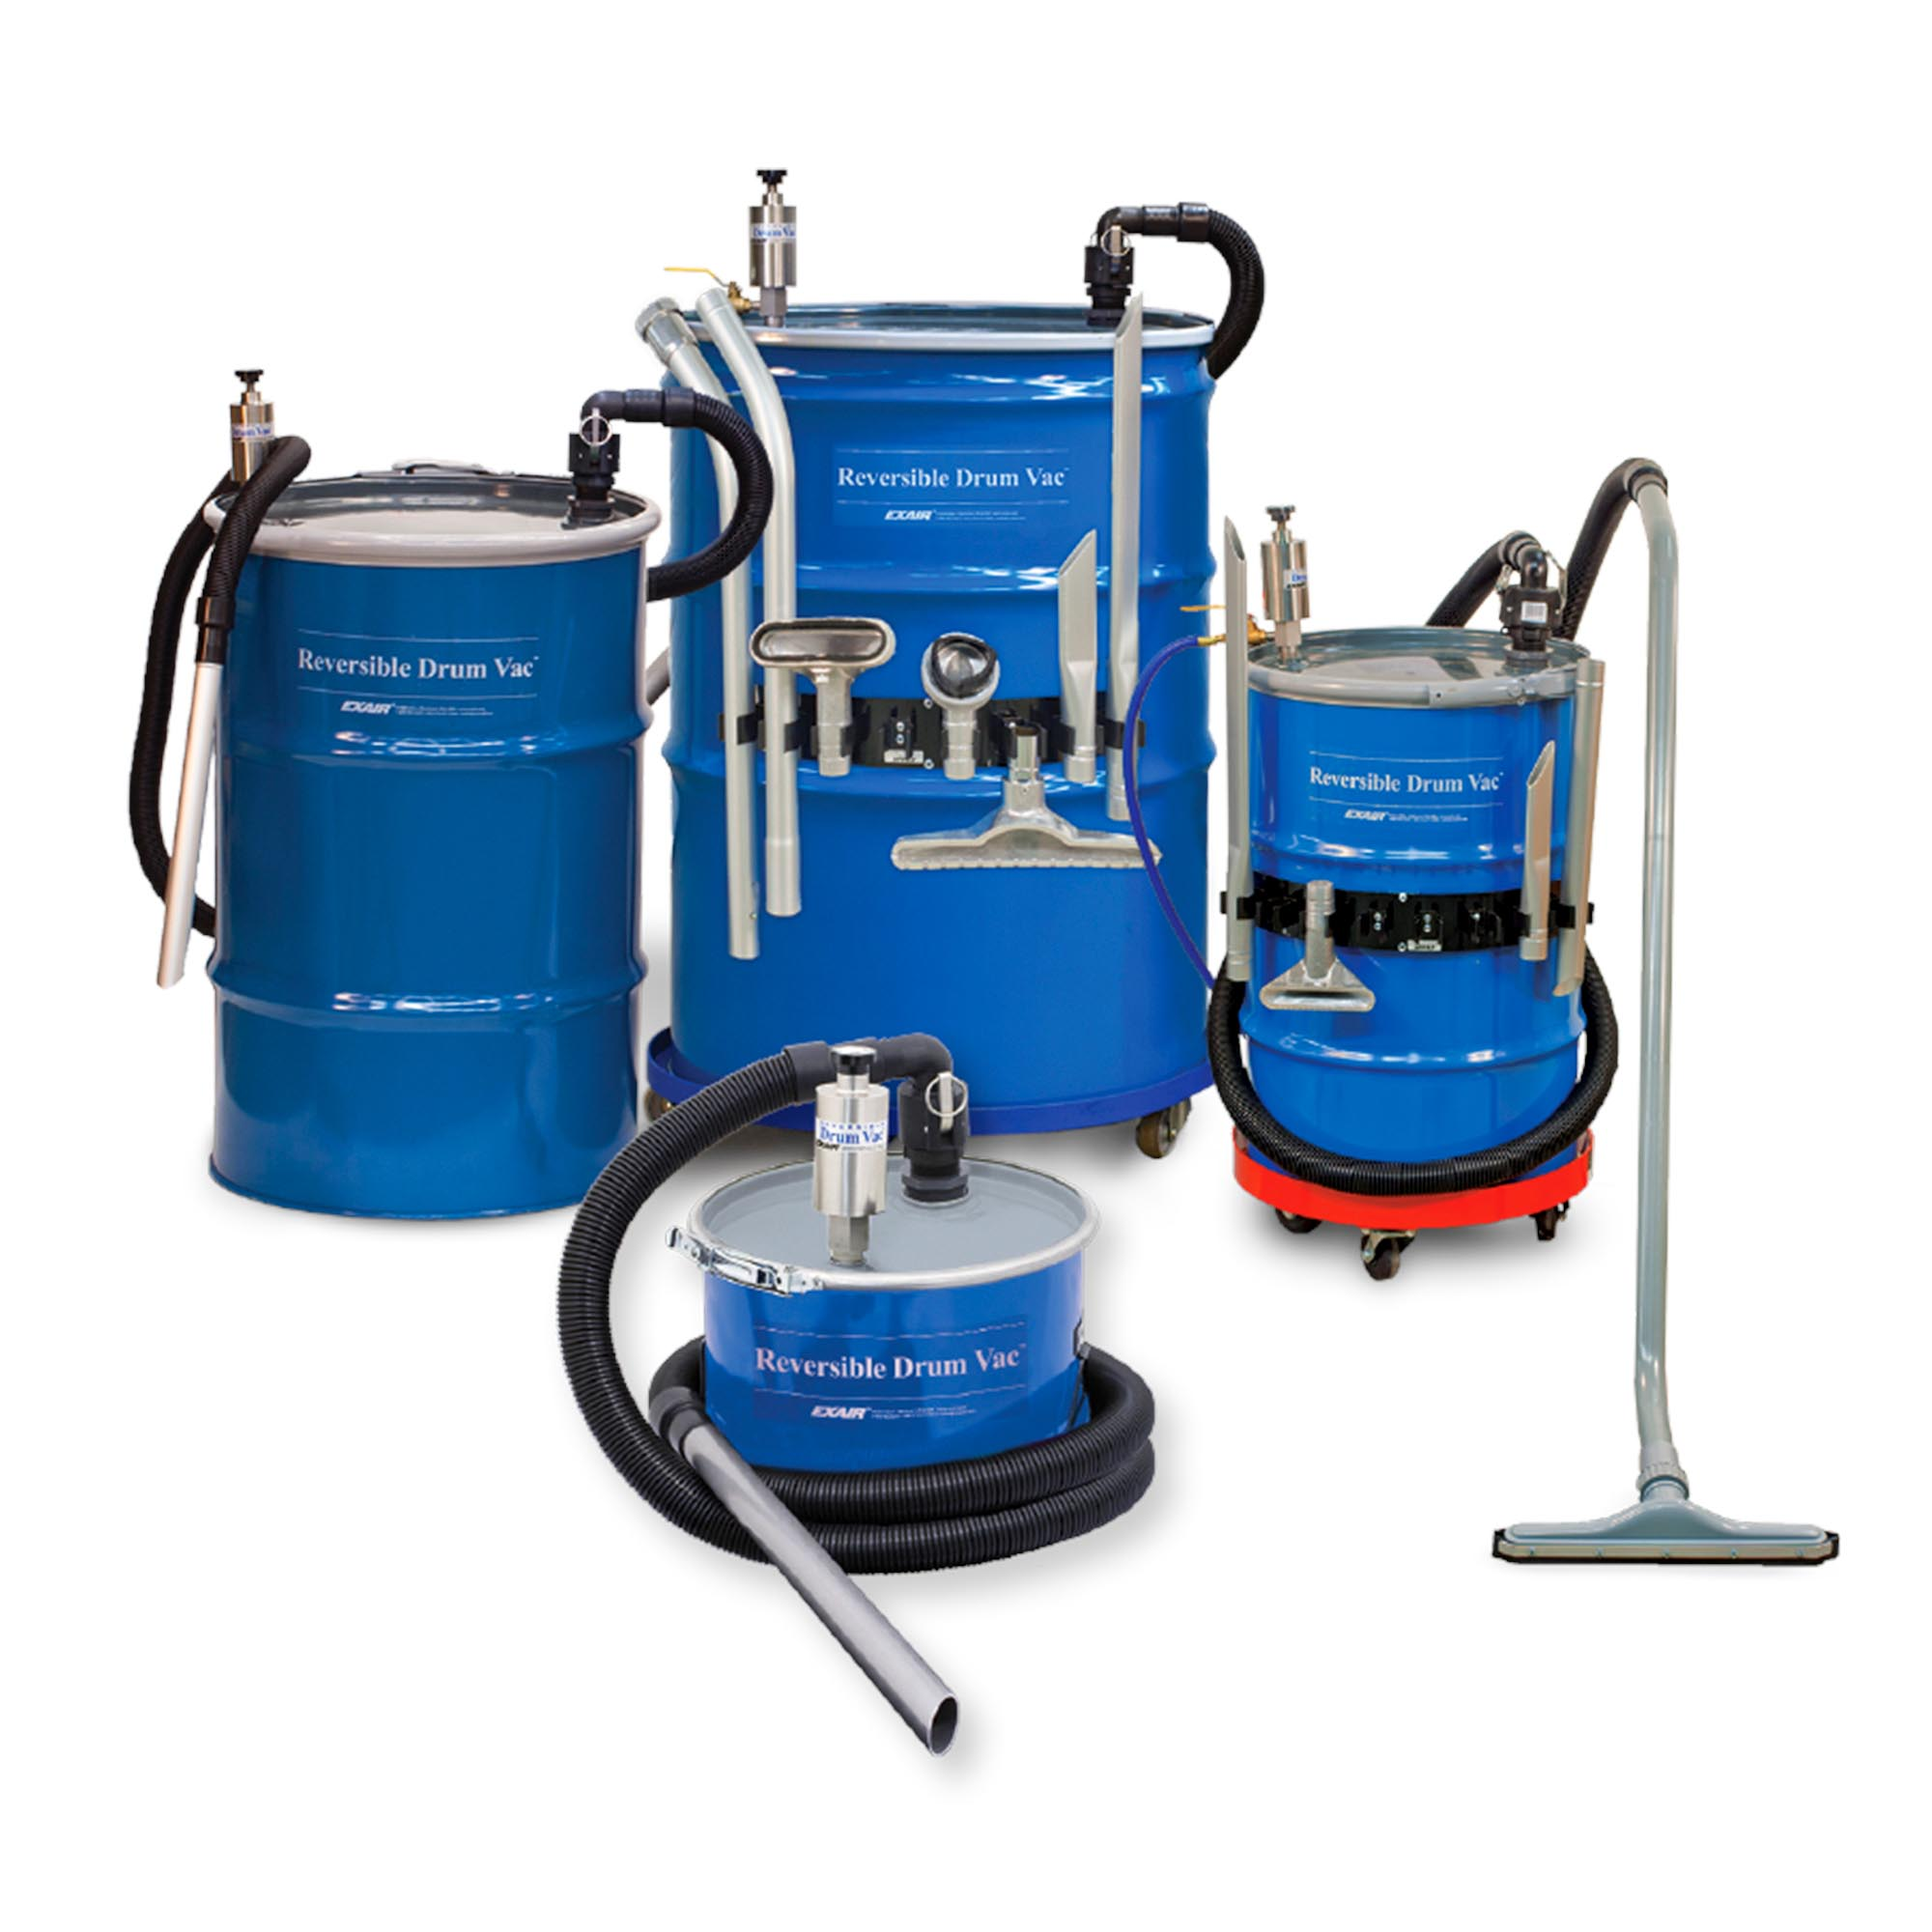 Reversible Drum Vac Systems are available in 5, 30, 55 and 110 gallon sizes.